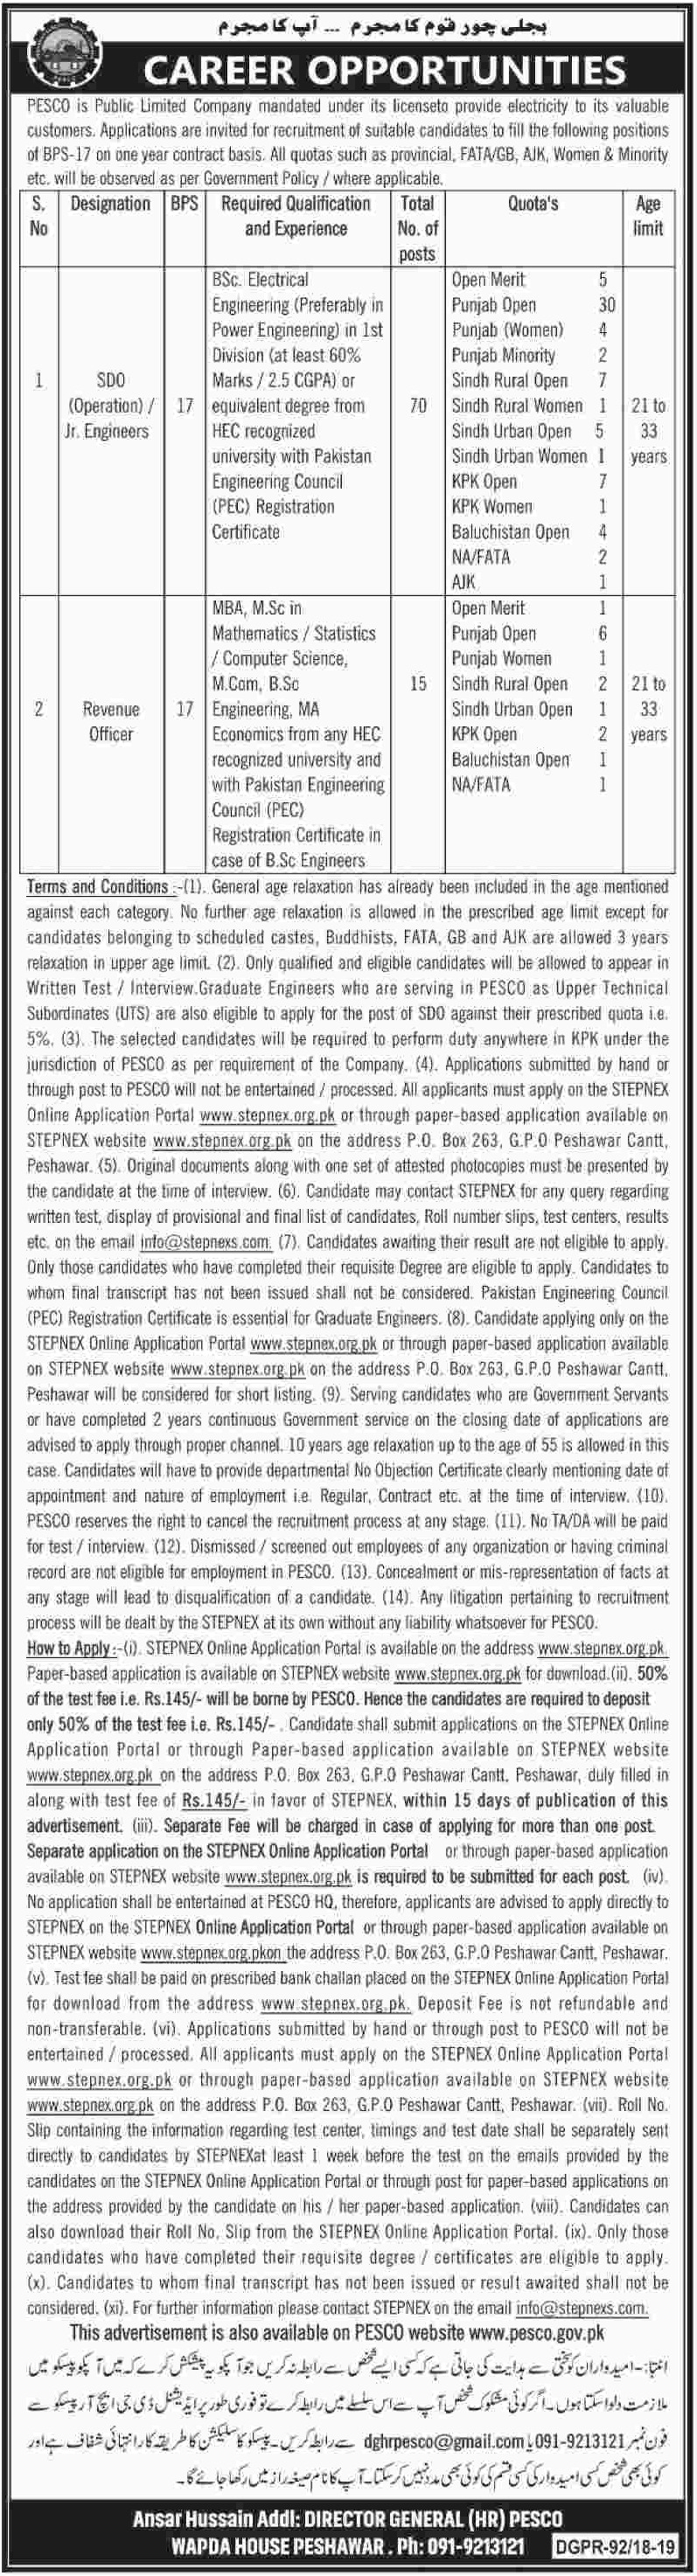 Peshawar Electric Supply Company PESCO Jobs 2019 SDO & Revenue Officer through STEPNEX